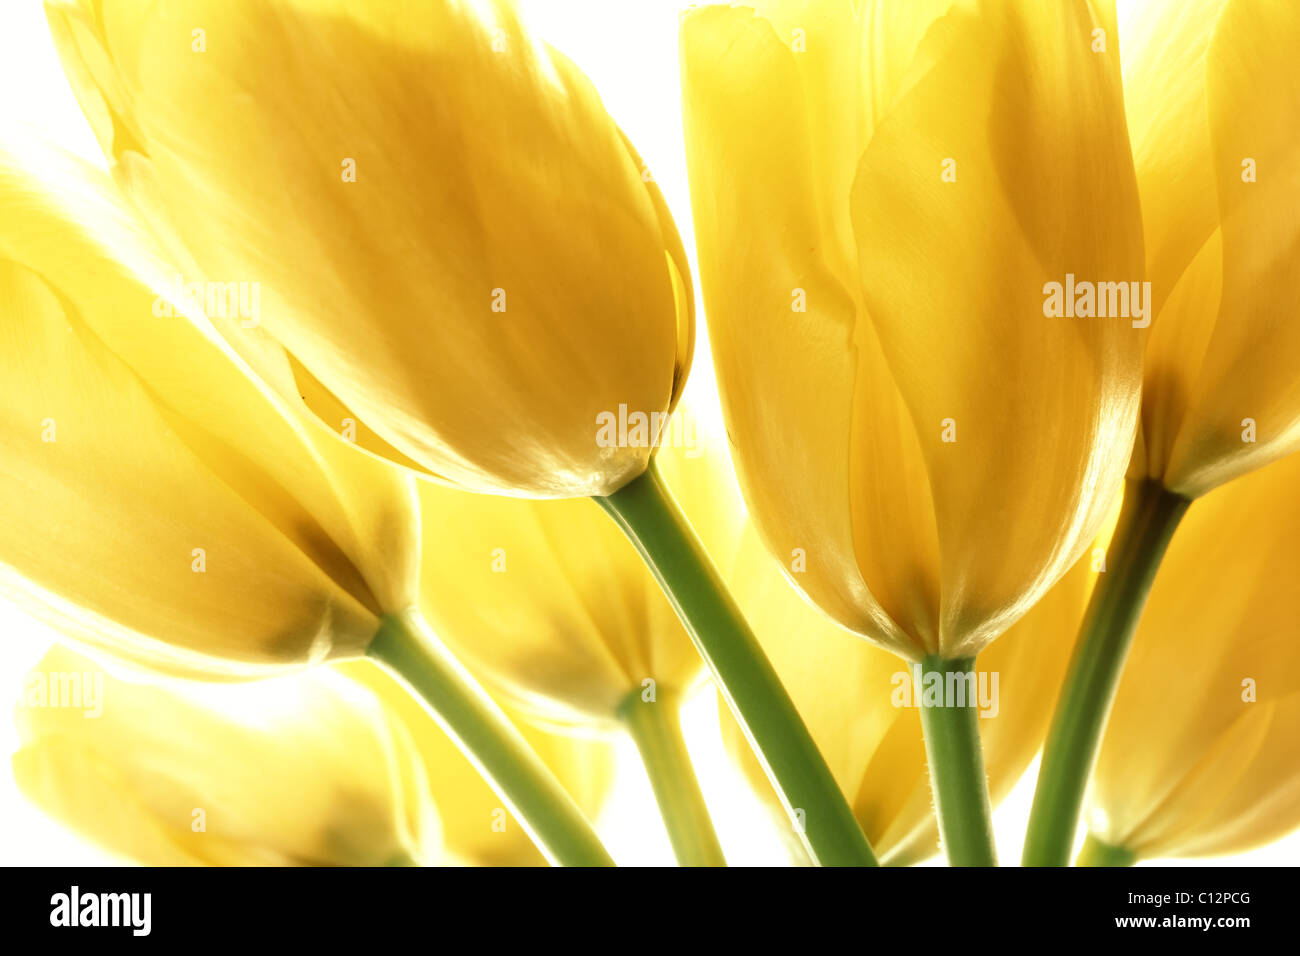 Yellow tulips isolated on white background - Stock Image